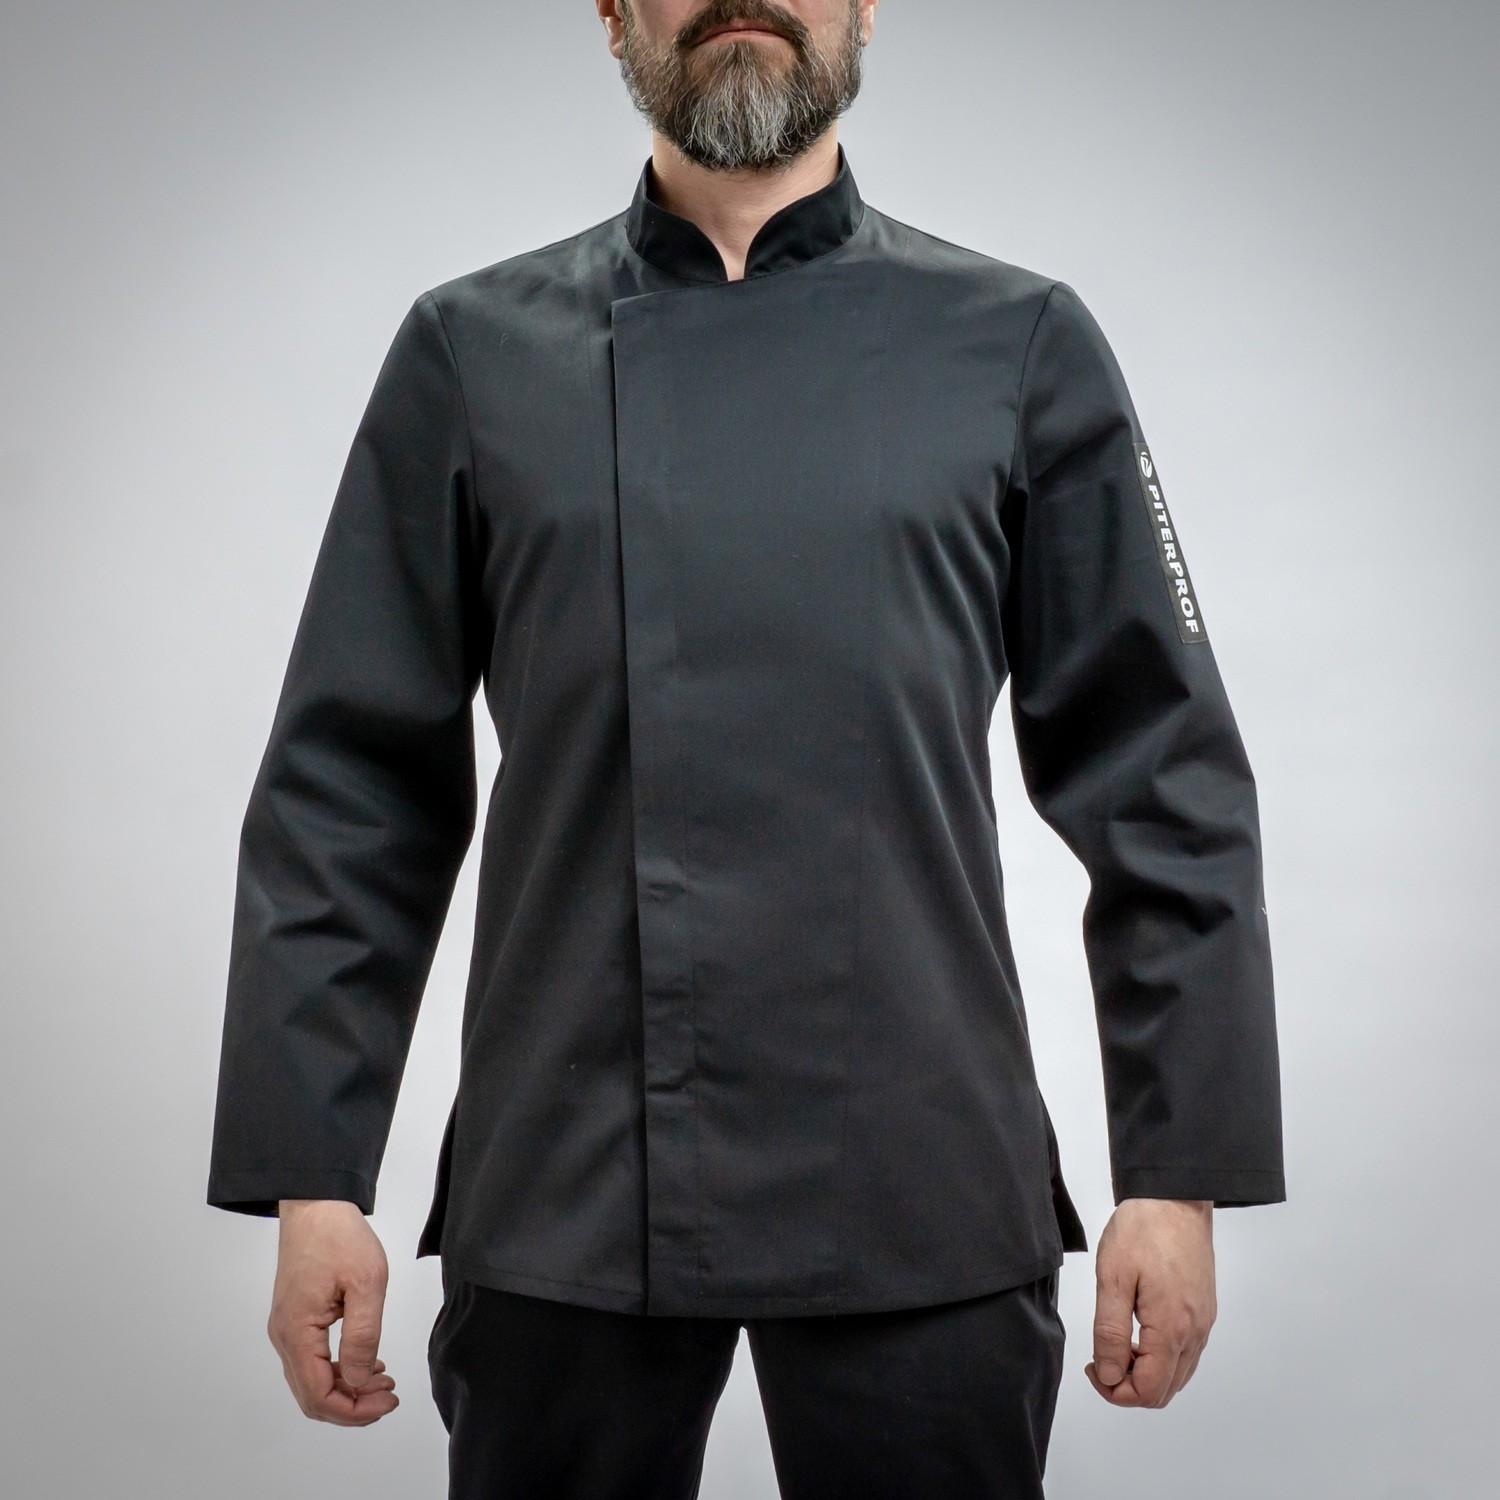 305RB - CHEF'S JACKET